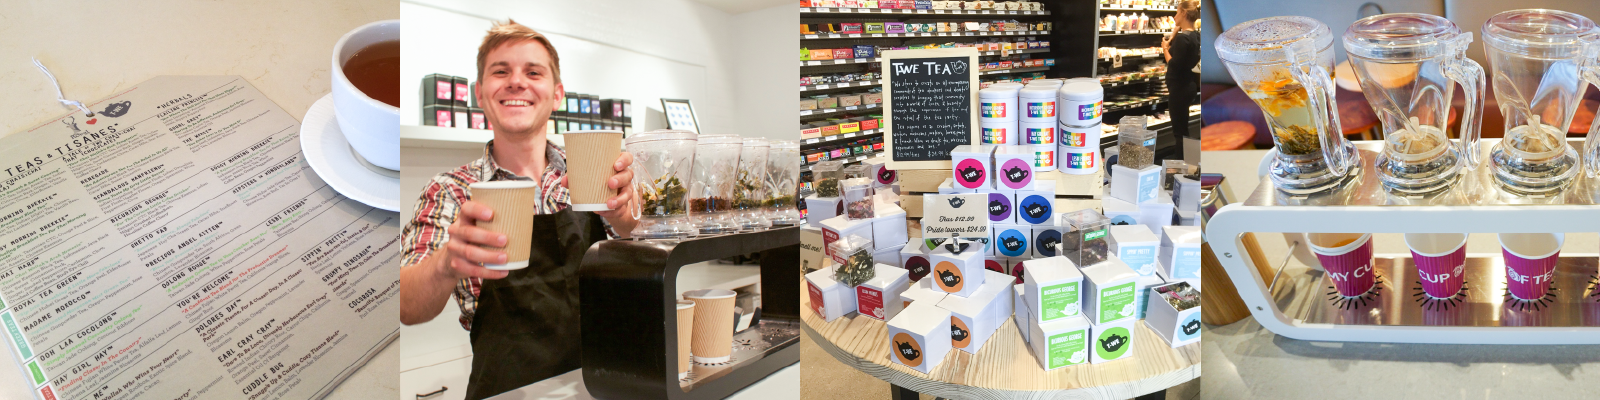 T-WE TEA Wholesale options, Pour Over Tea Bar, Tea Menu, Tea Service